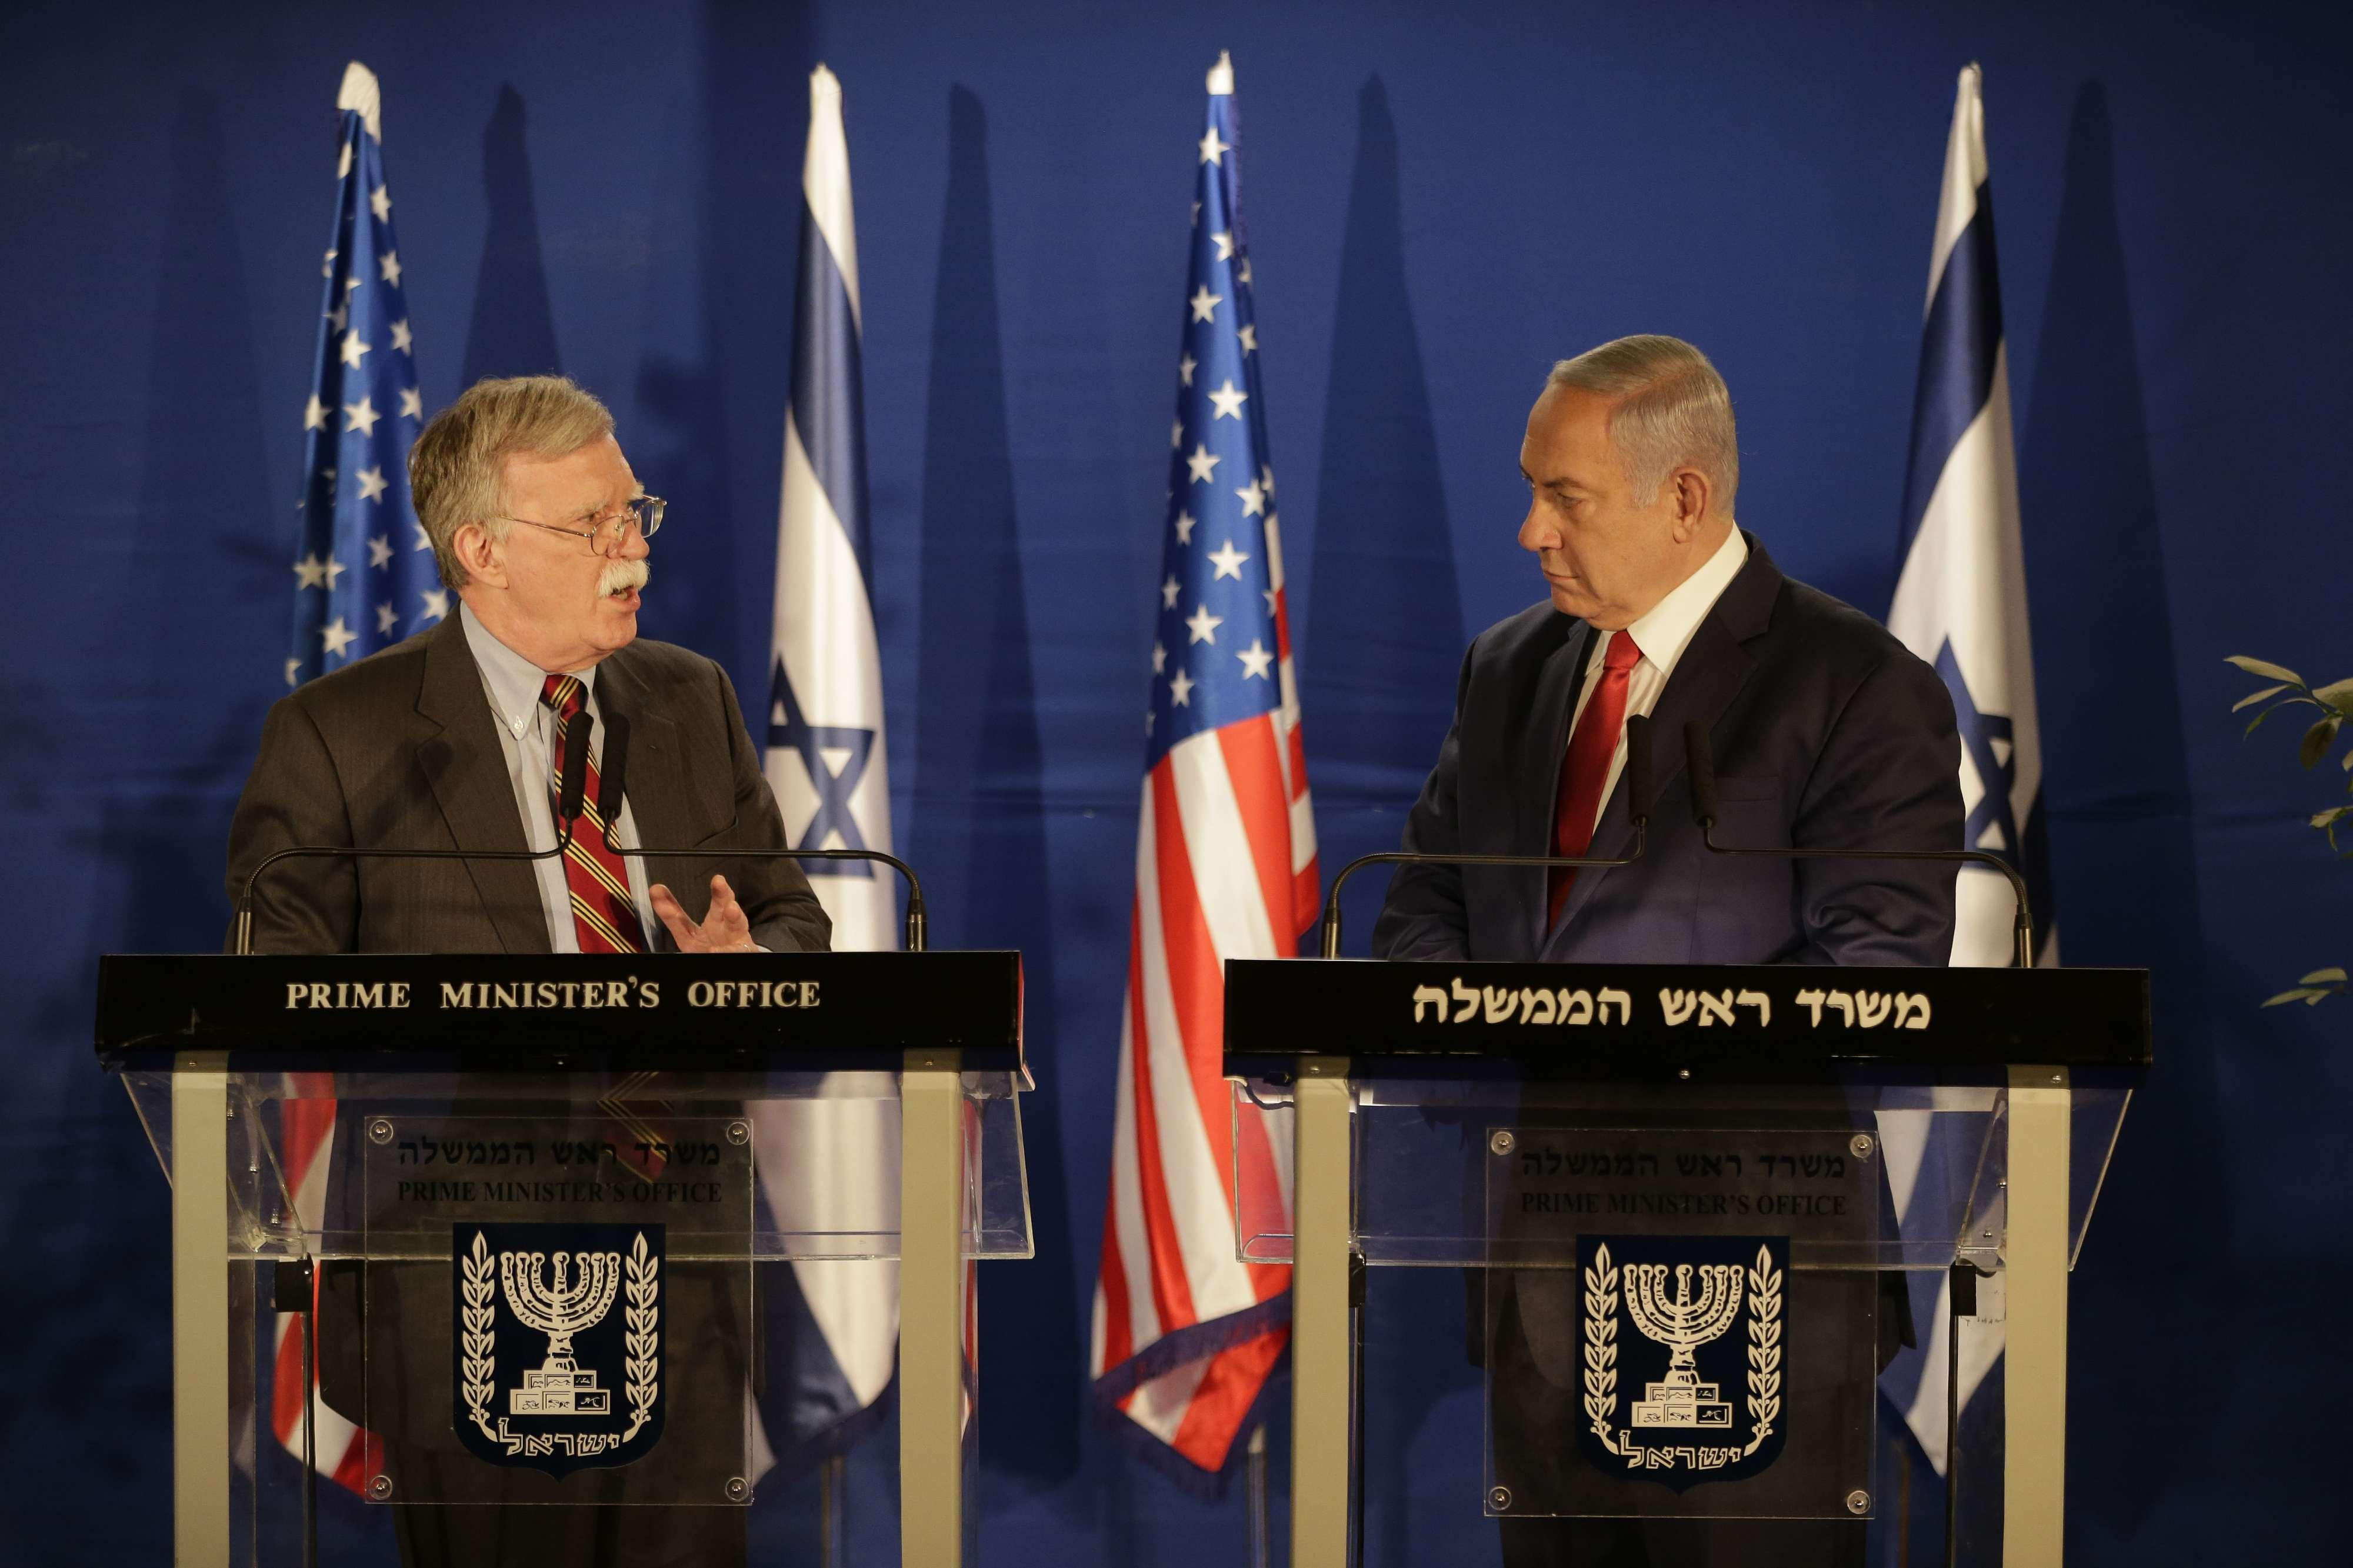 US National Security Advisor John Bolton, left, speaks to Israeli Prime Minister Benjamin Netanyahu during a joint statement to the media follow their meeting, in Jerusalem, Sunday, Jan. 6, 2019. (AP Photo/Oded Balilty, Pool)